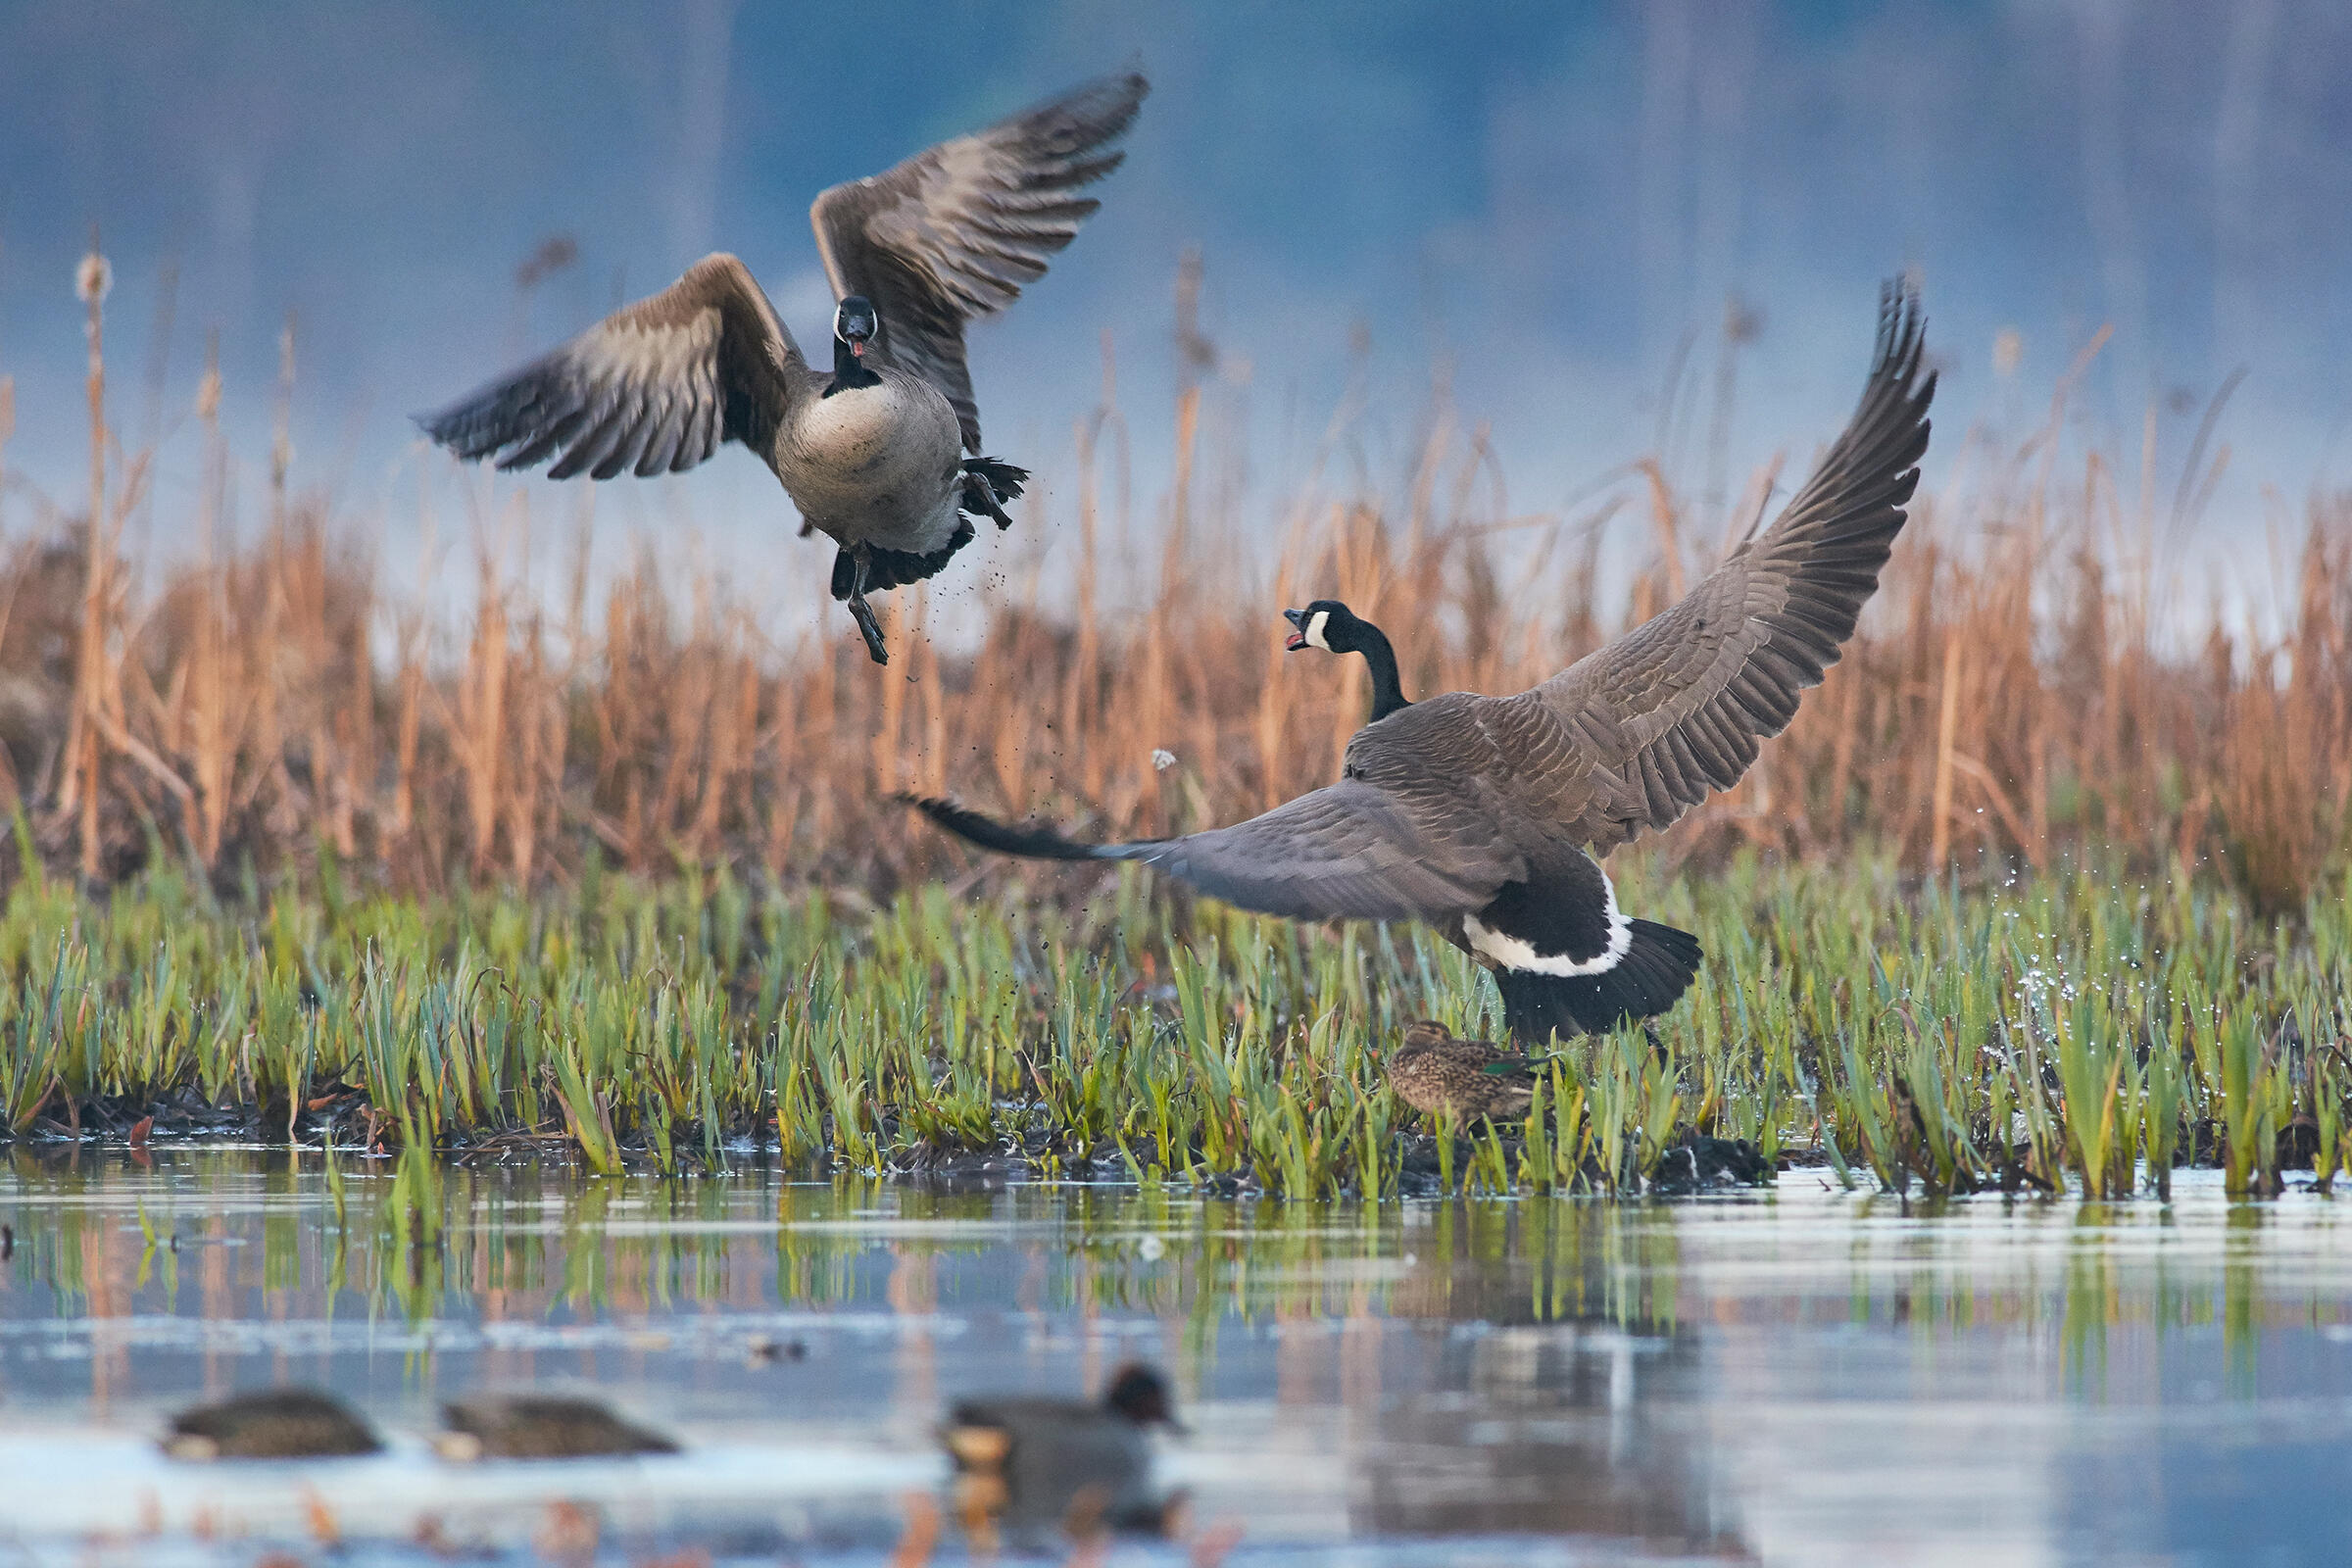 On a still wetland with green grasses and brown reeds in the background, a Canada Goose flies up from the water, its wings outstretched and beak agape as another Canada Goose, wings bent at 90-degree angles, honks back. Several Green-winged Teal watch the scene from the water below.